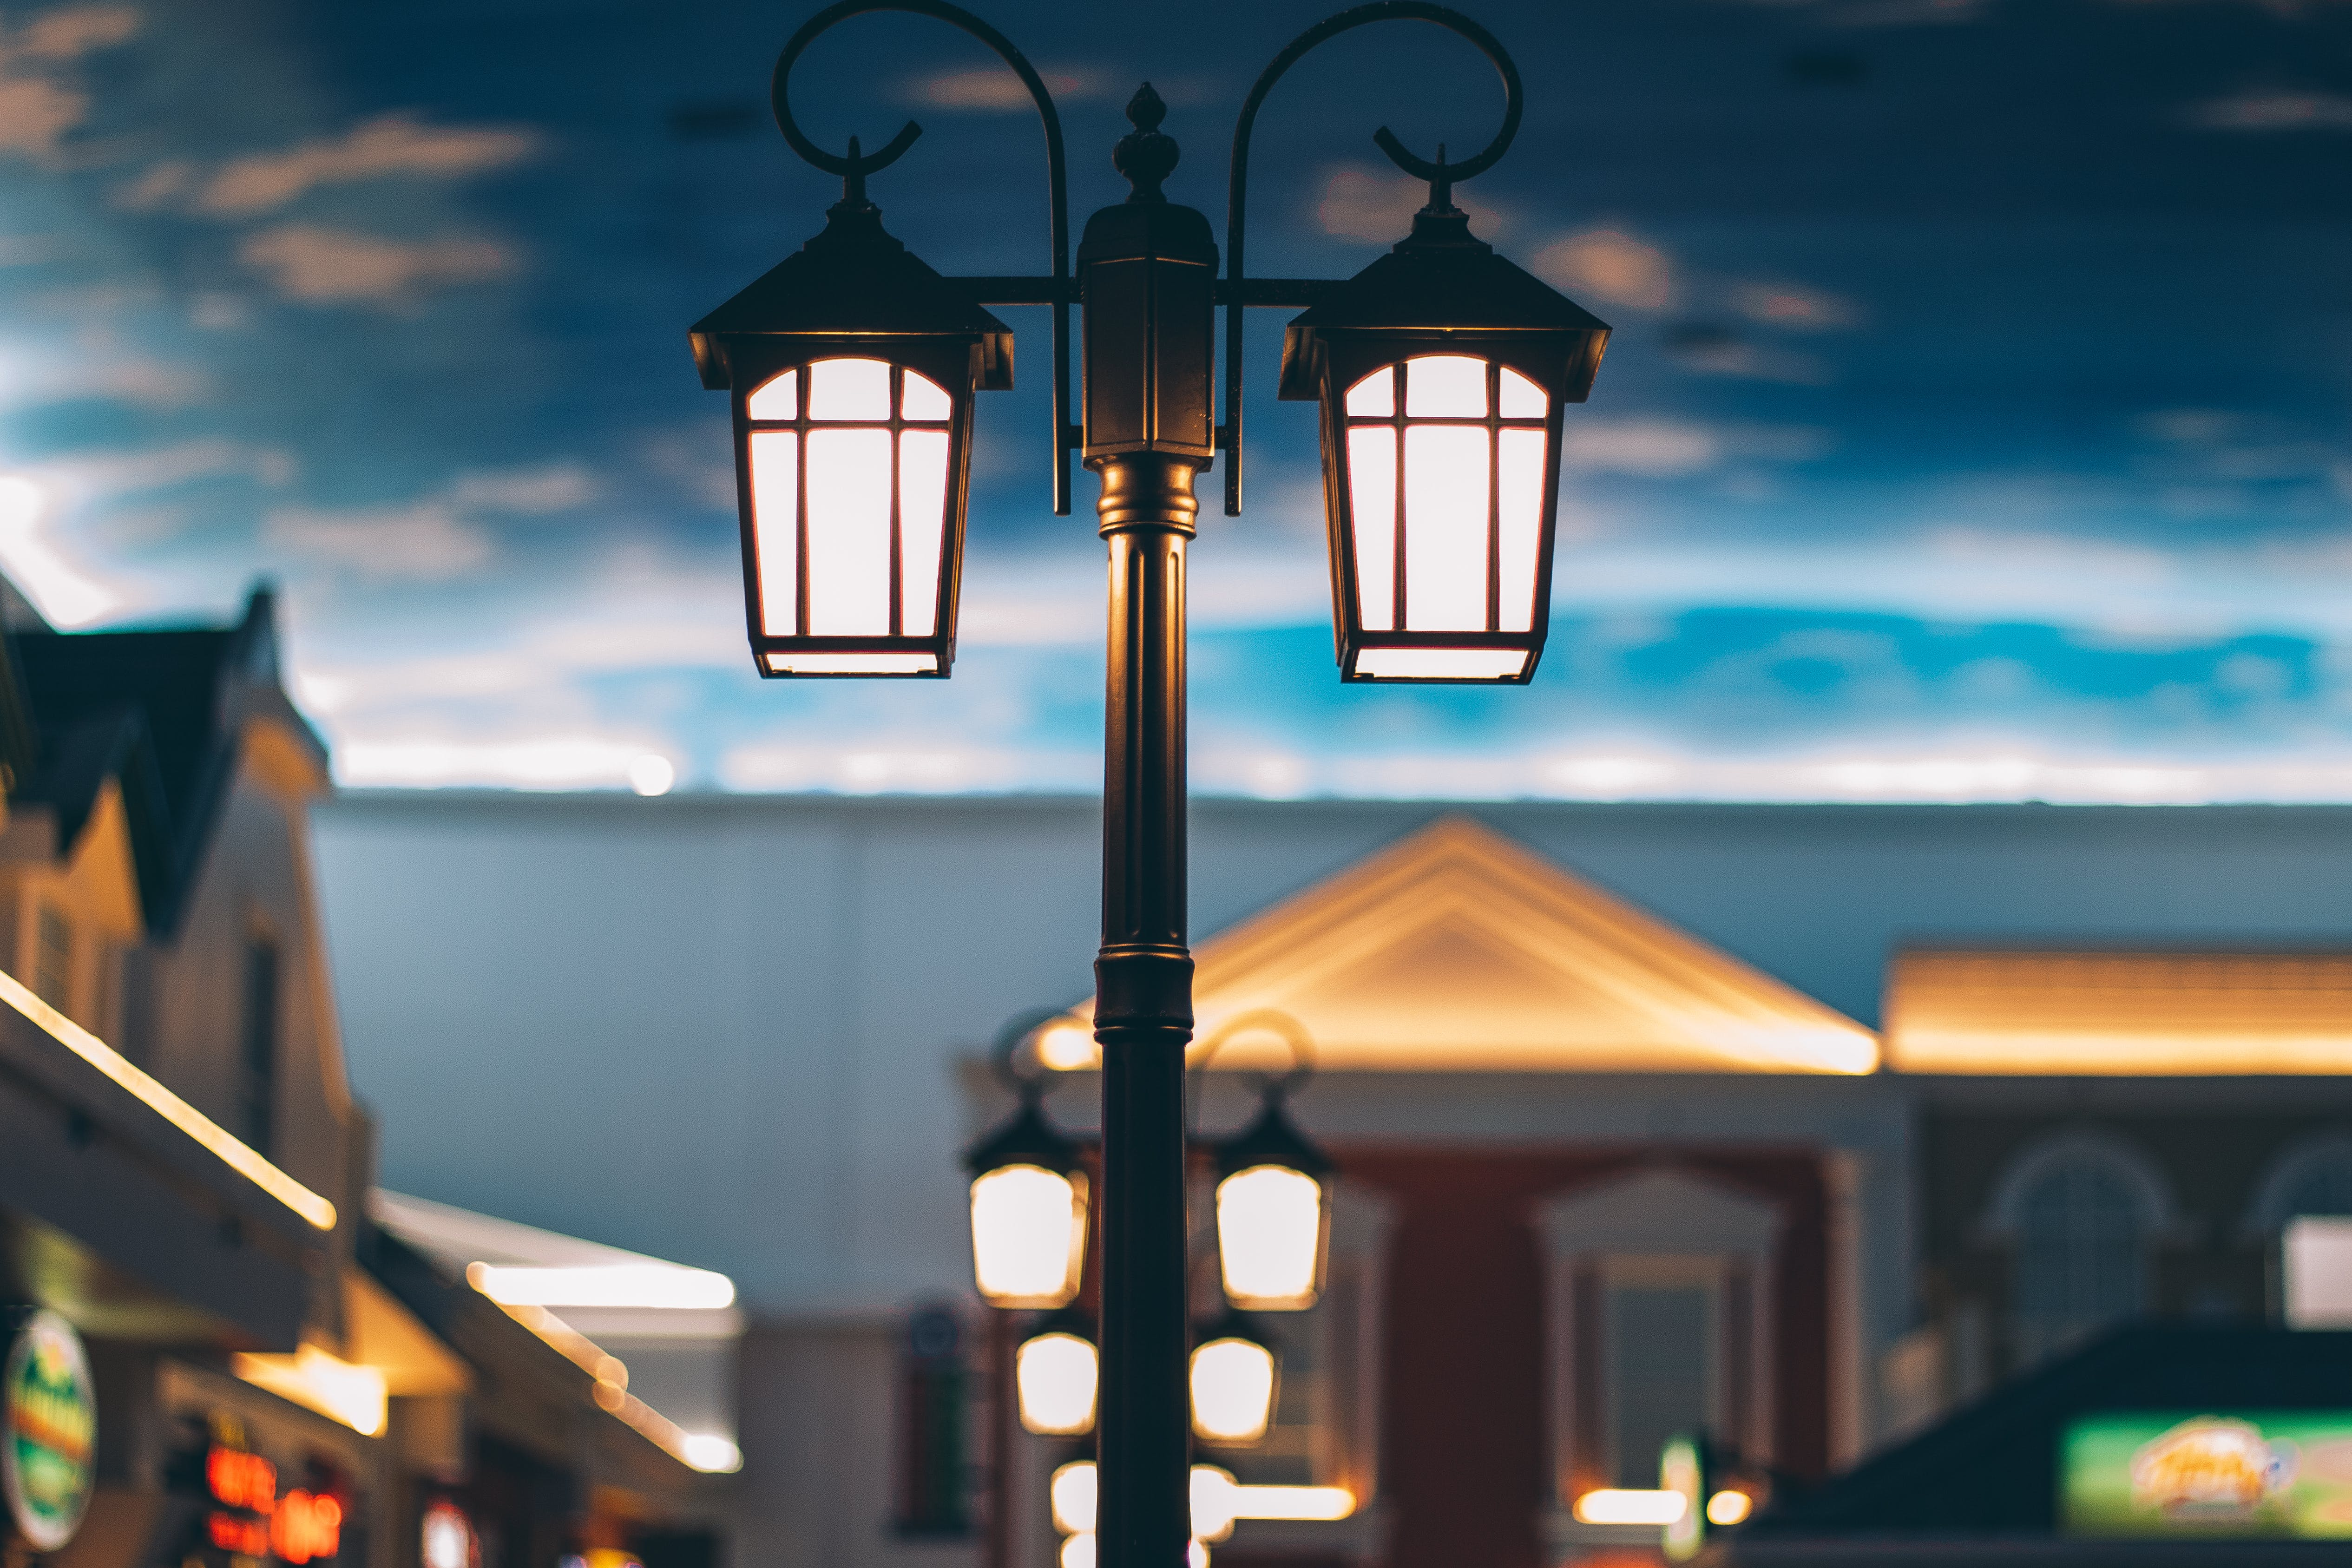 Close-Up Photo of Street Lamps